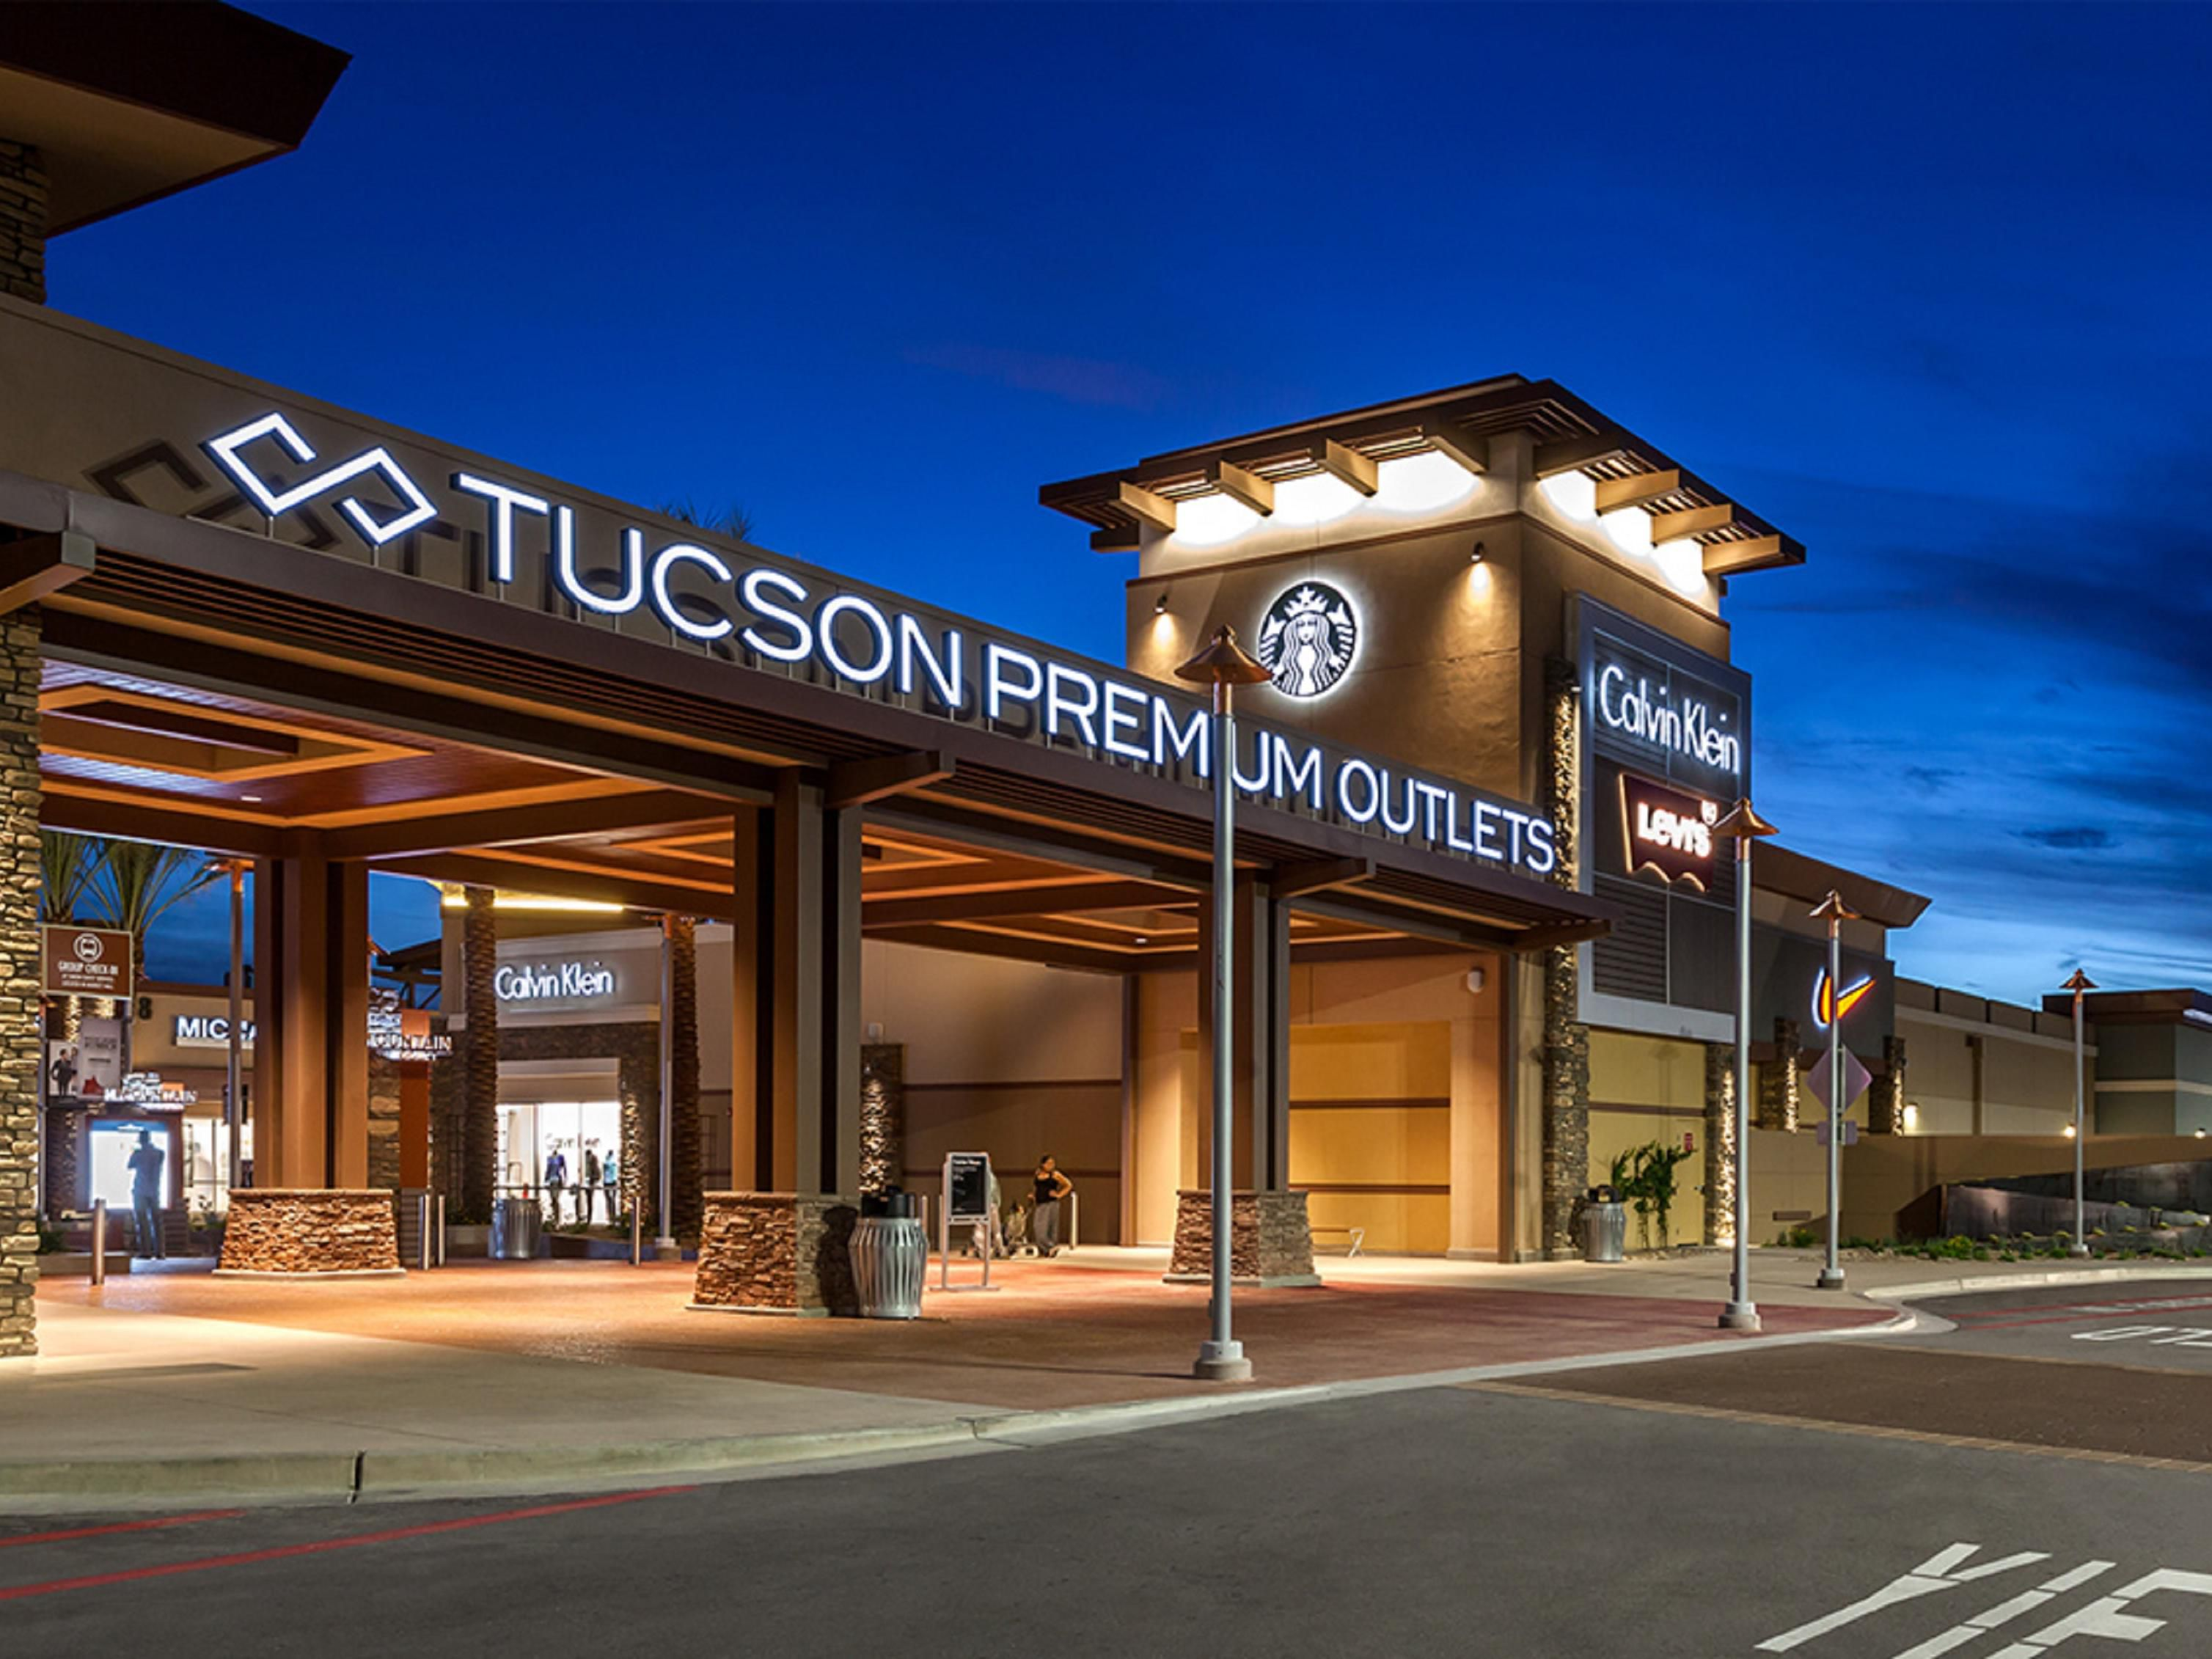 Tucson Premium Outlets located across the street from hotel